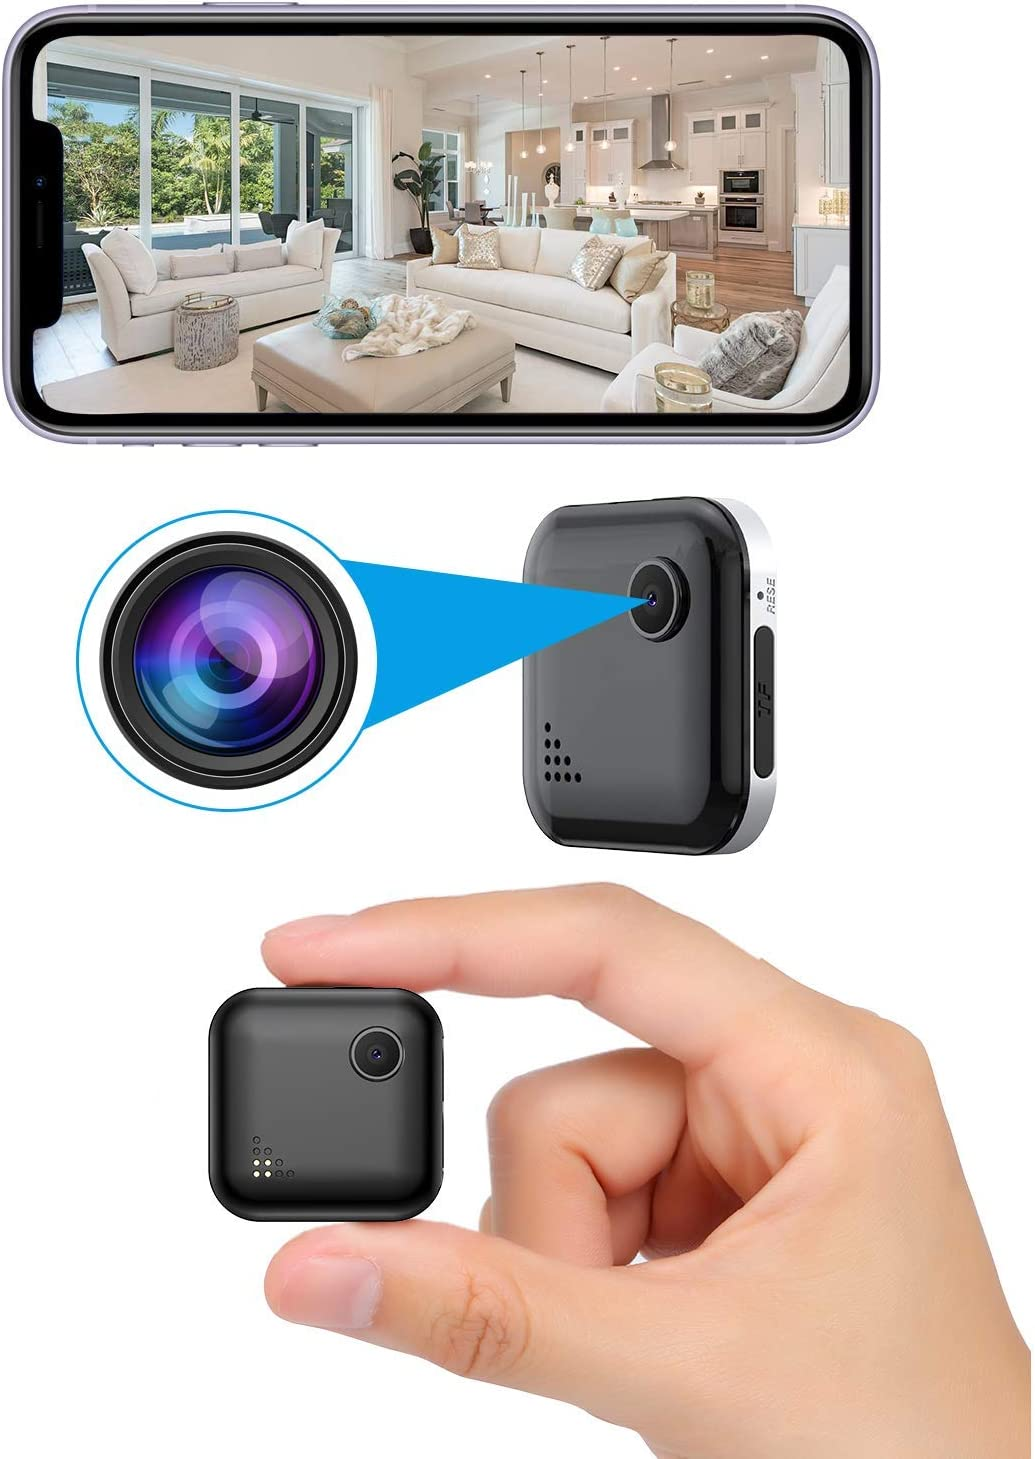 OUCAM Mini Spy Camera WiFi Wireless Hidden Camera with Audio Live Feed Home Security Camera Nanny Cam Wireless with Cell Phone App Night Vision Motion Detection